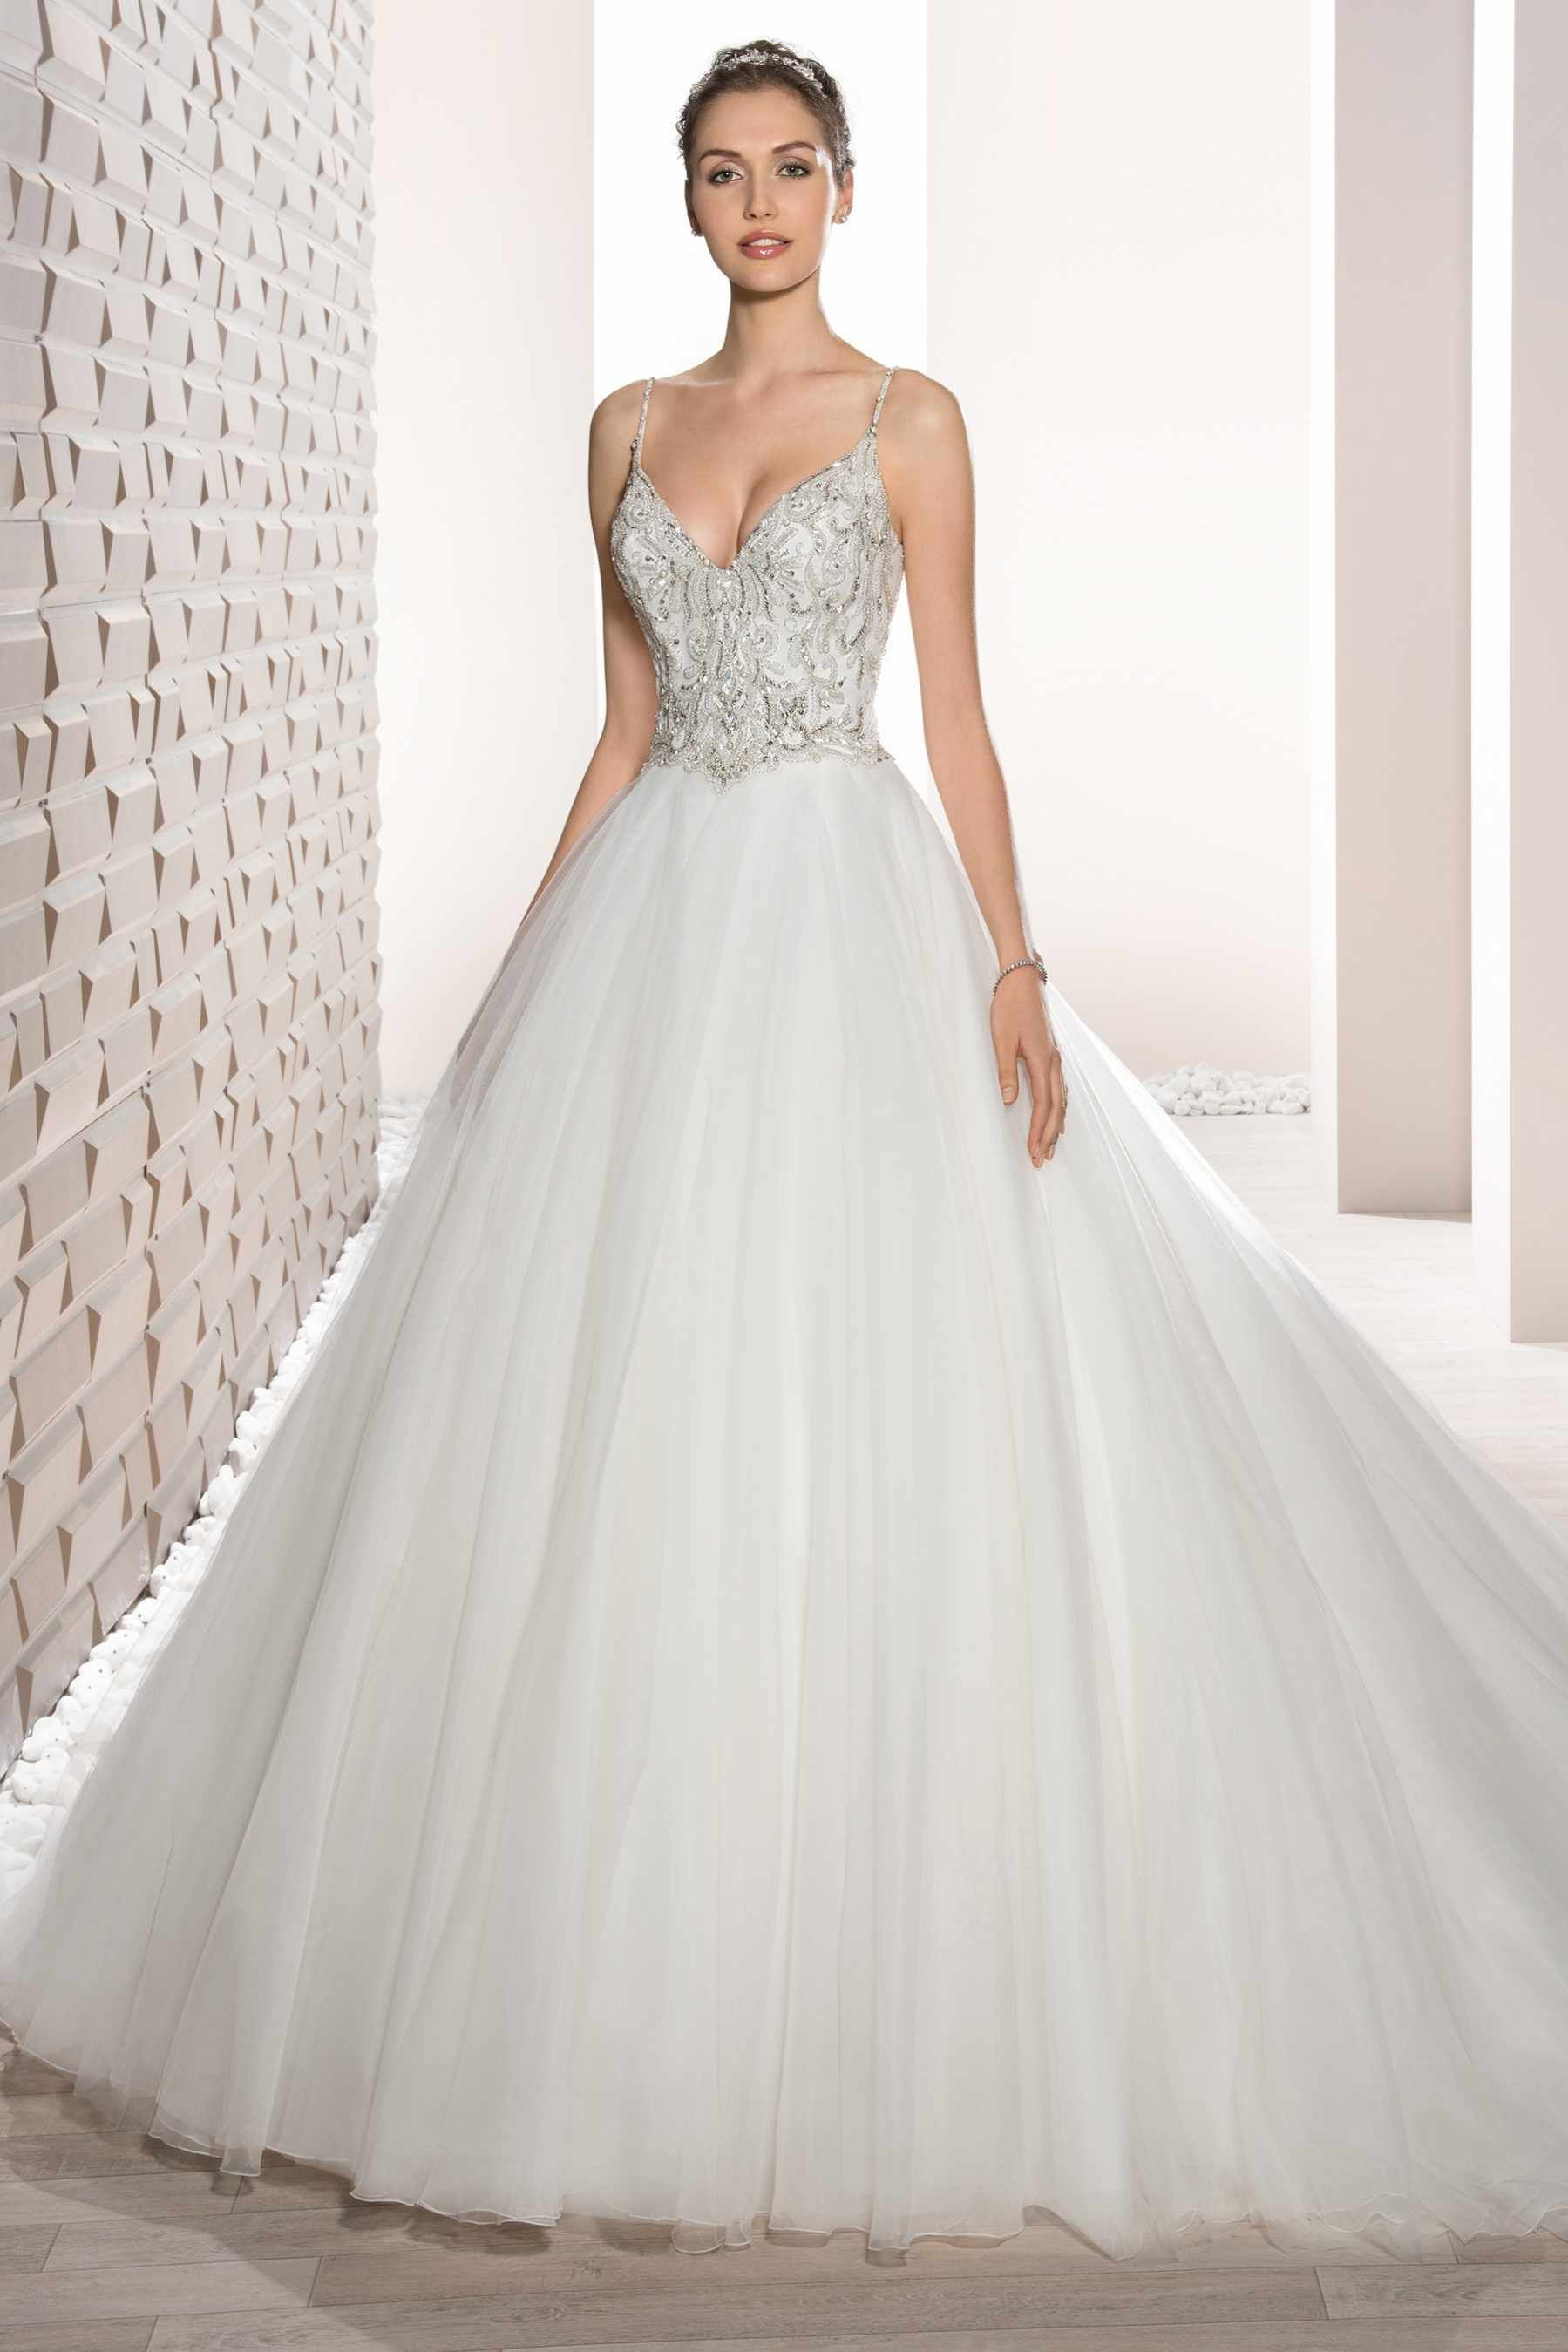 Demetrios wedding dress style shimmering beaded embroidery